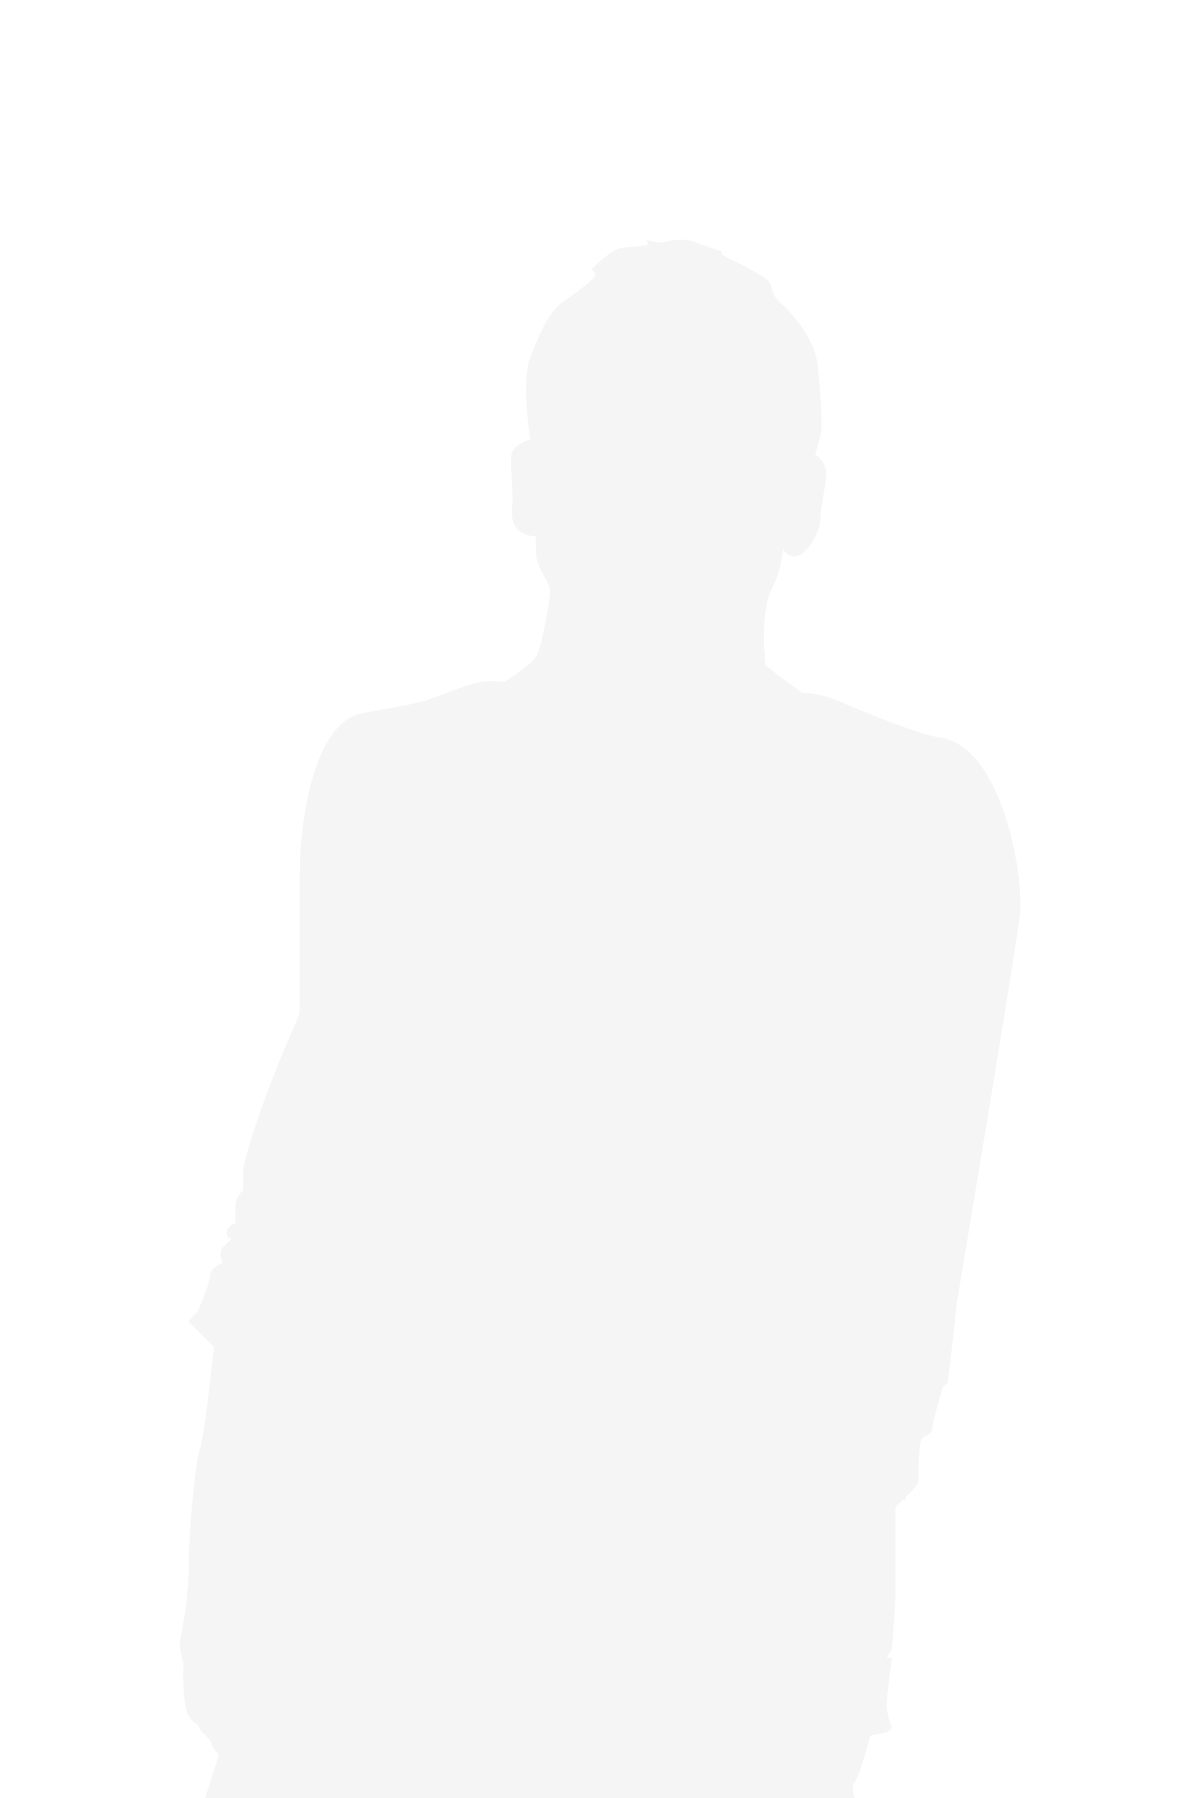 Male silhouette tall